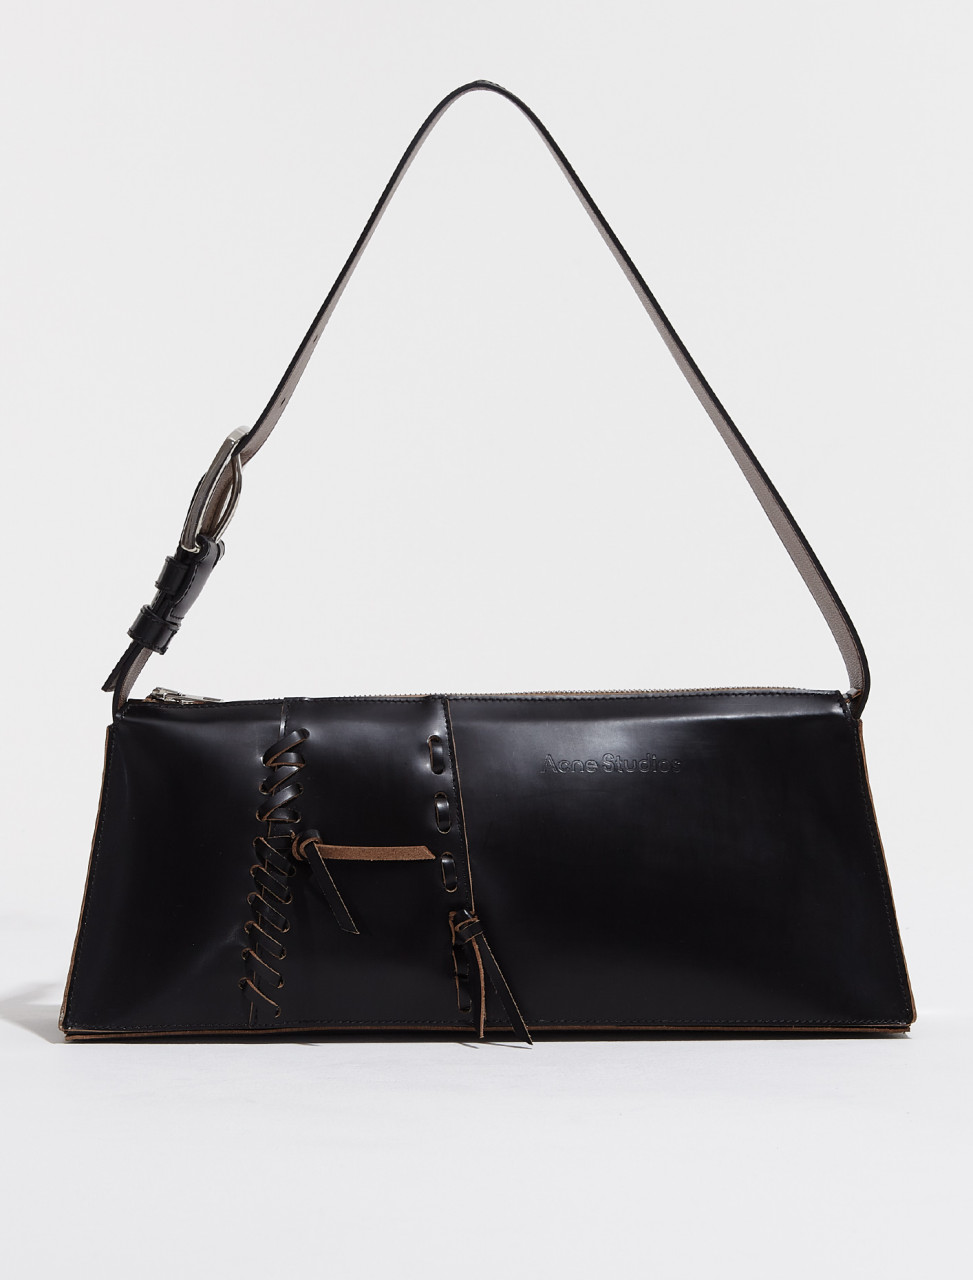 A10160 900 FN WN BAGS000174 ACNE STUDIOS SMALL HANDBAG WITH LACE DETAIL IN BLACK